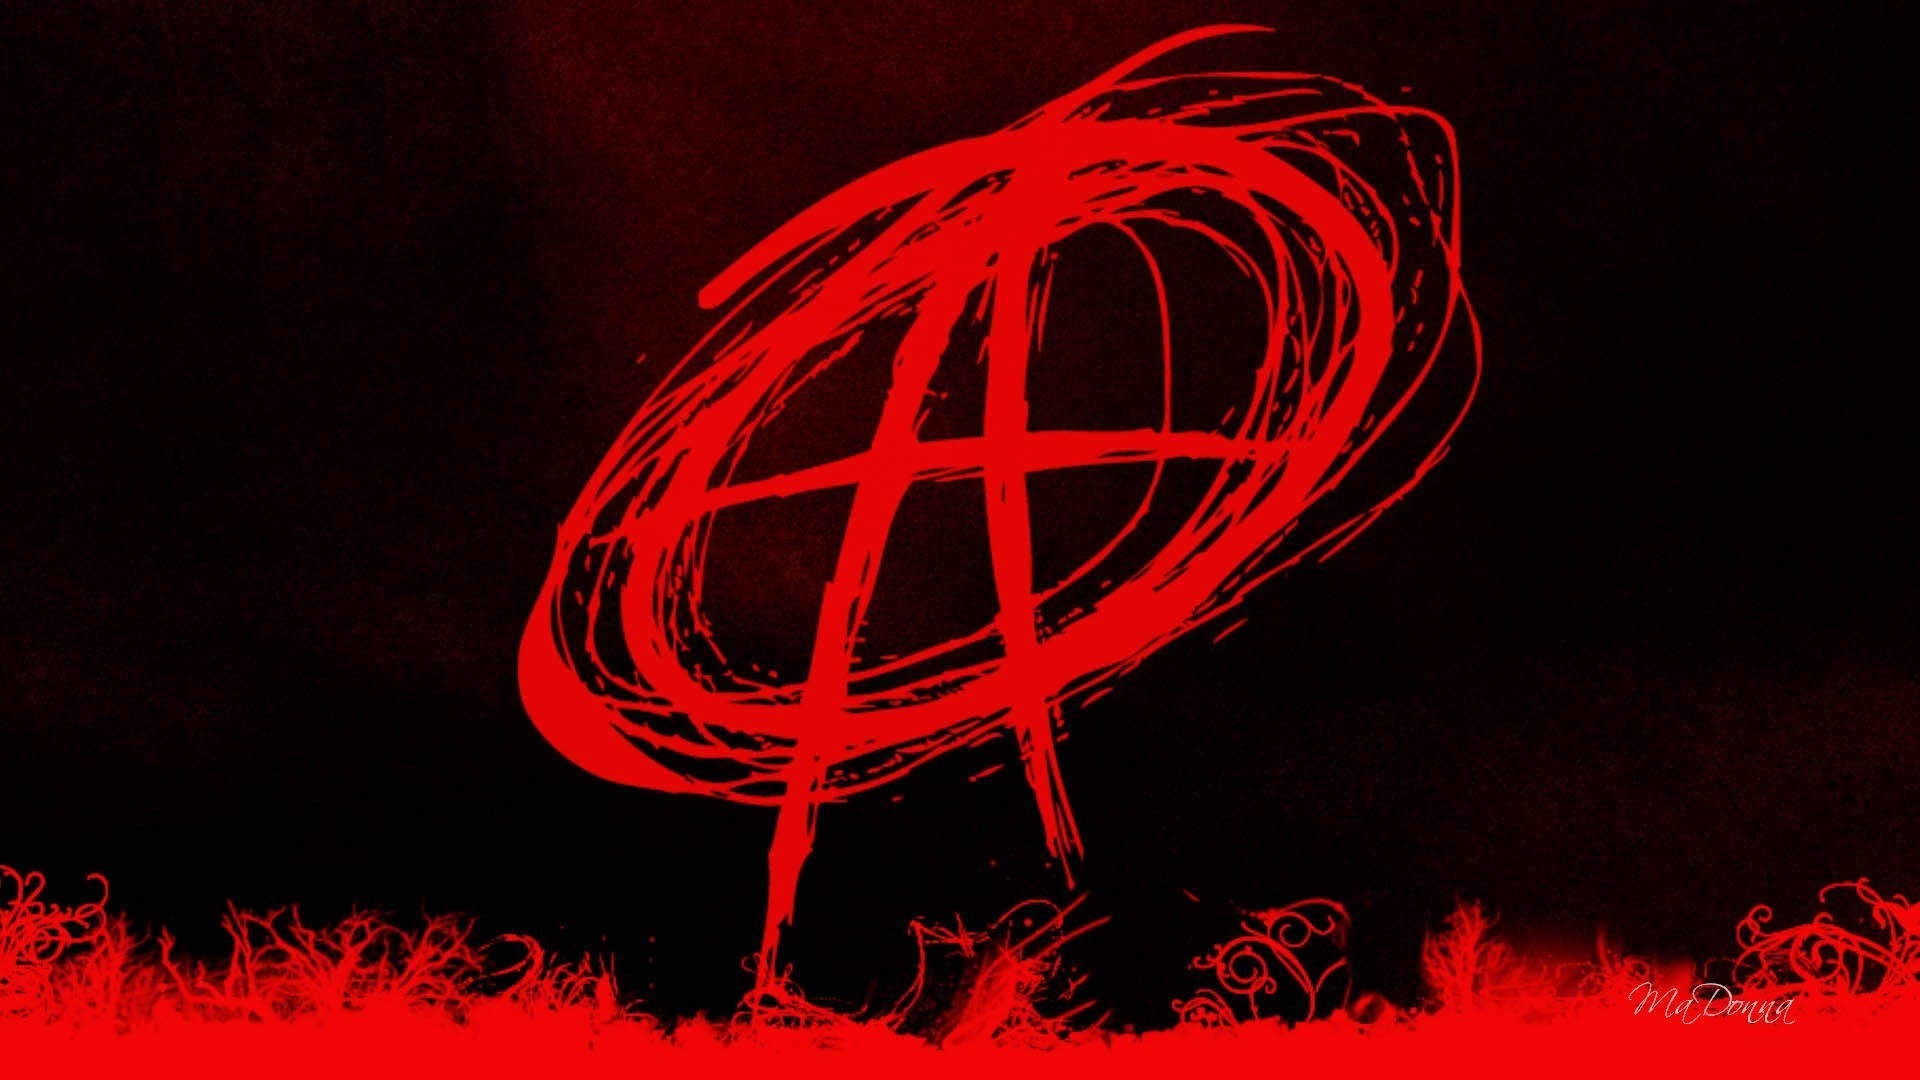 Anarchy Symbol Wallpapers Hd Wallpaper Collections 4kwallpaper